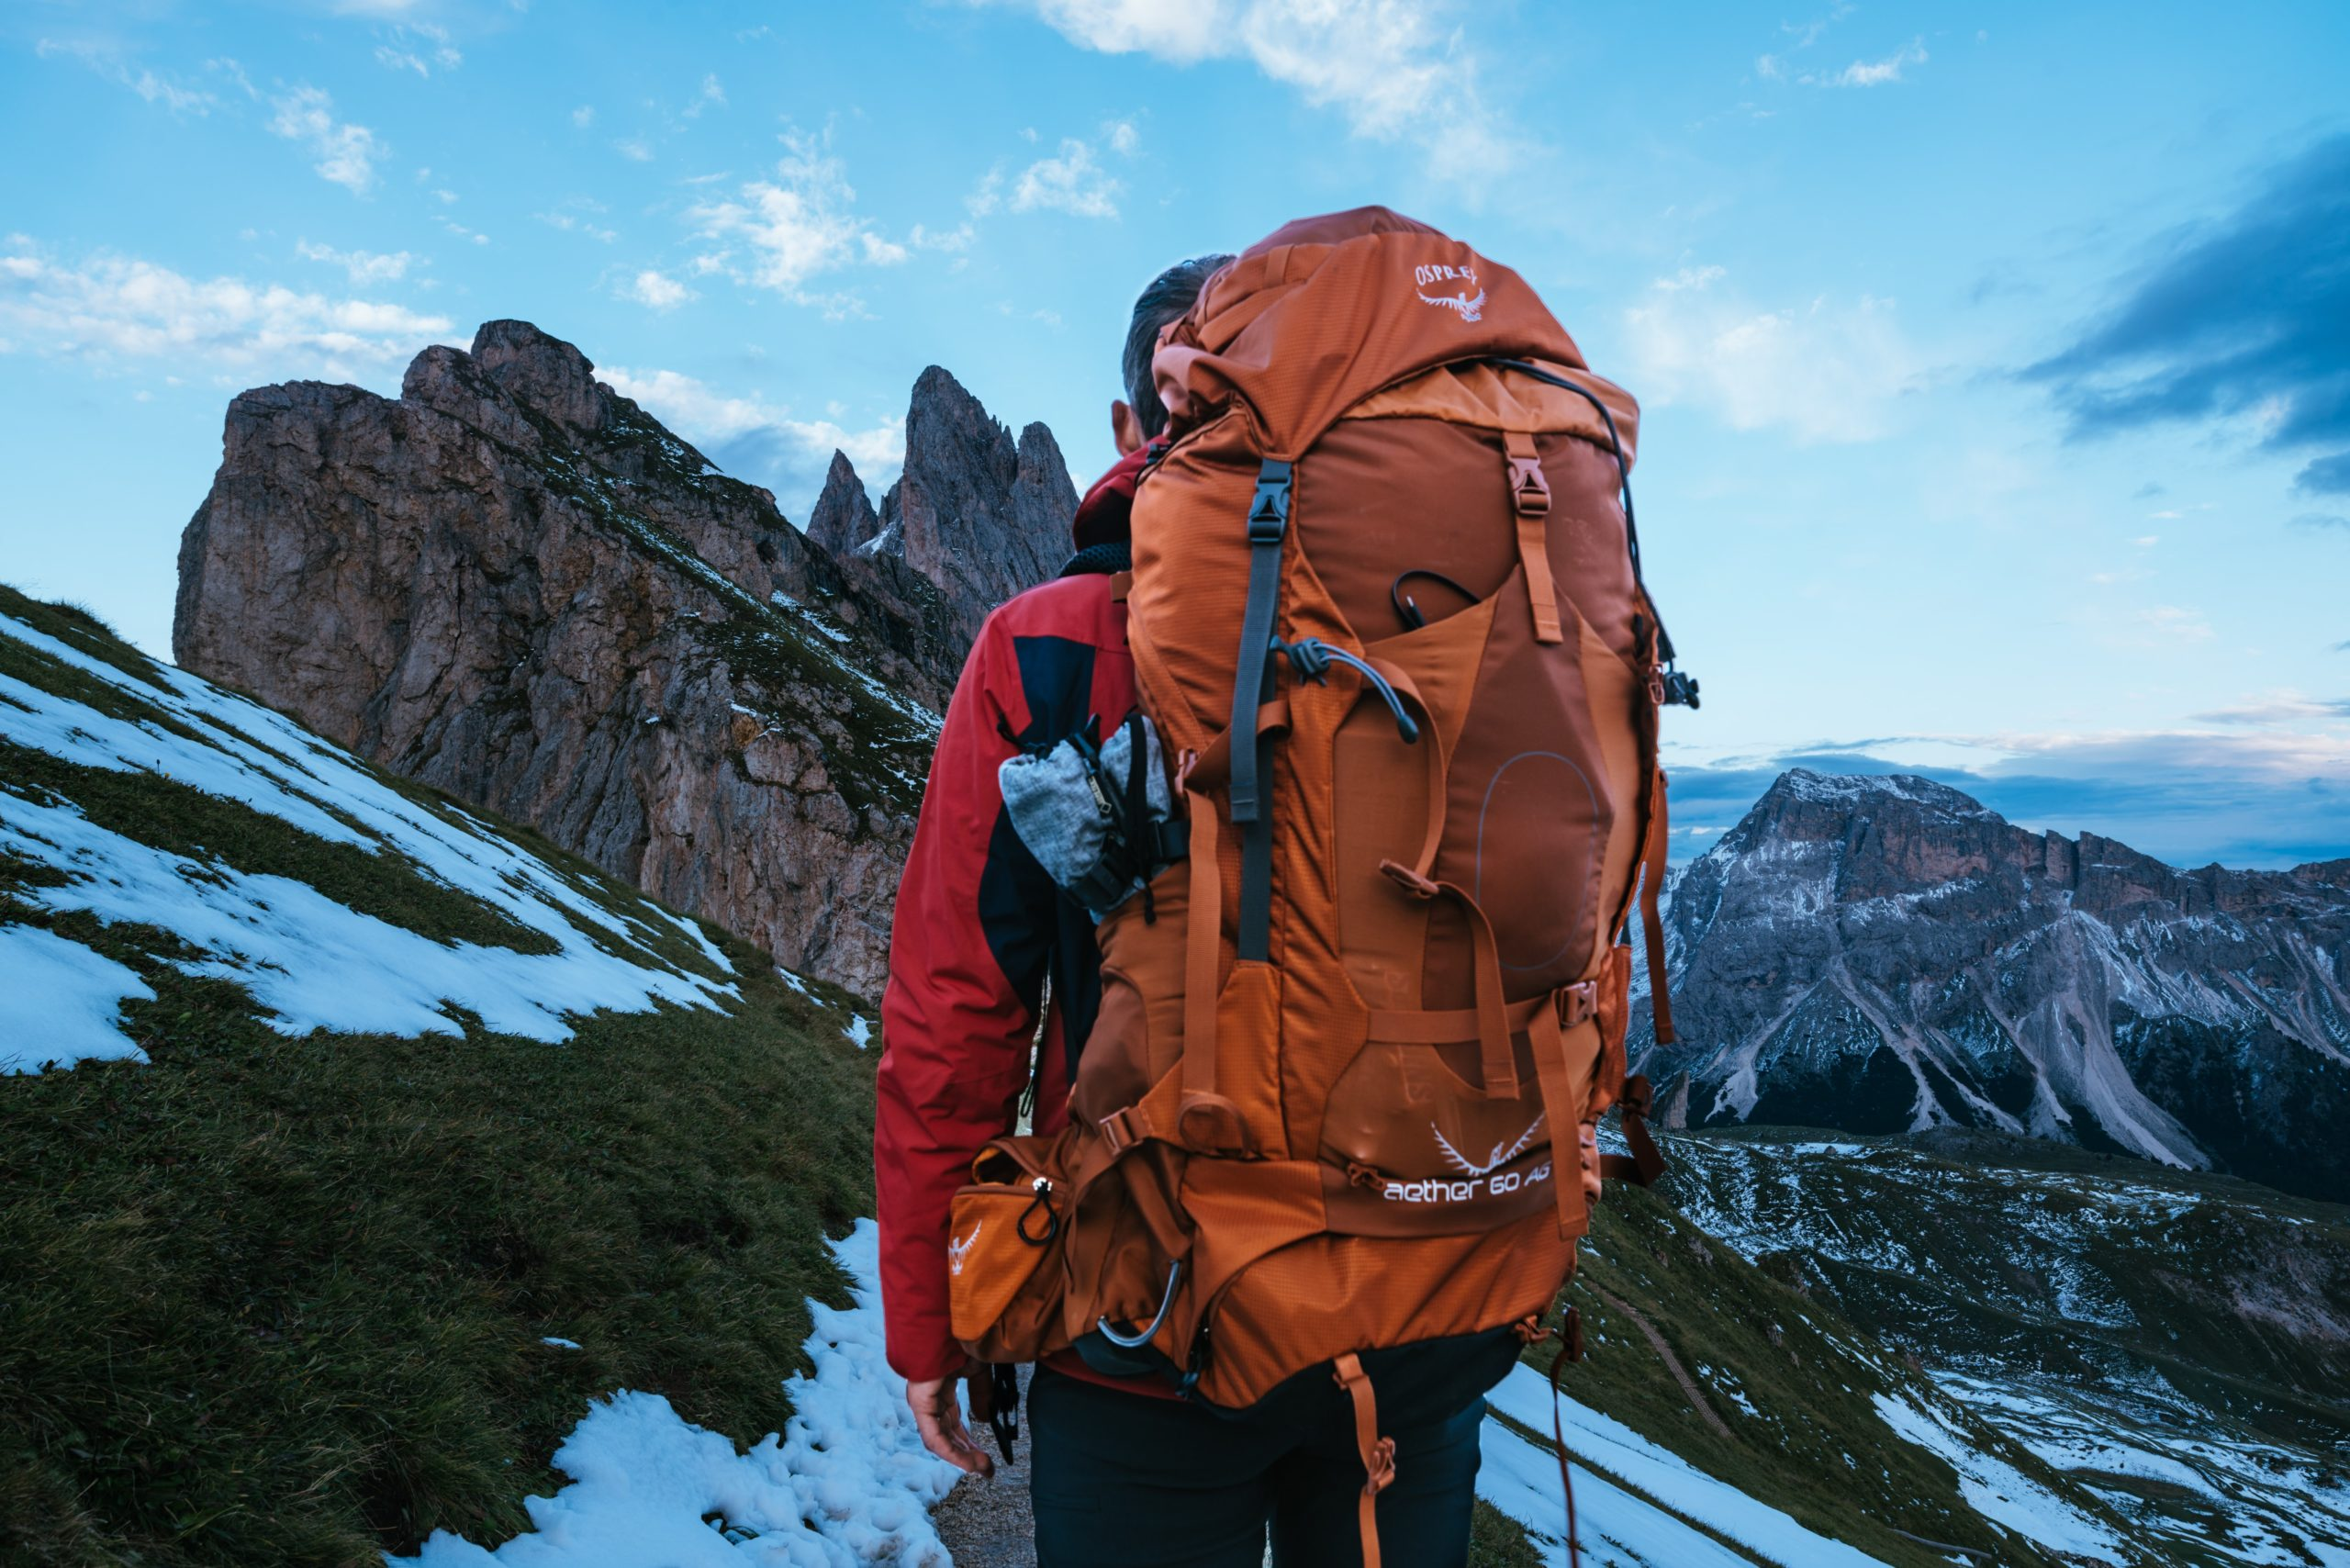 Benefits Of Backpacking: What Type Of Backpack To Use